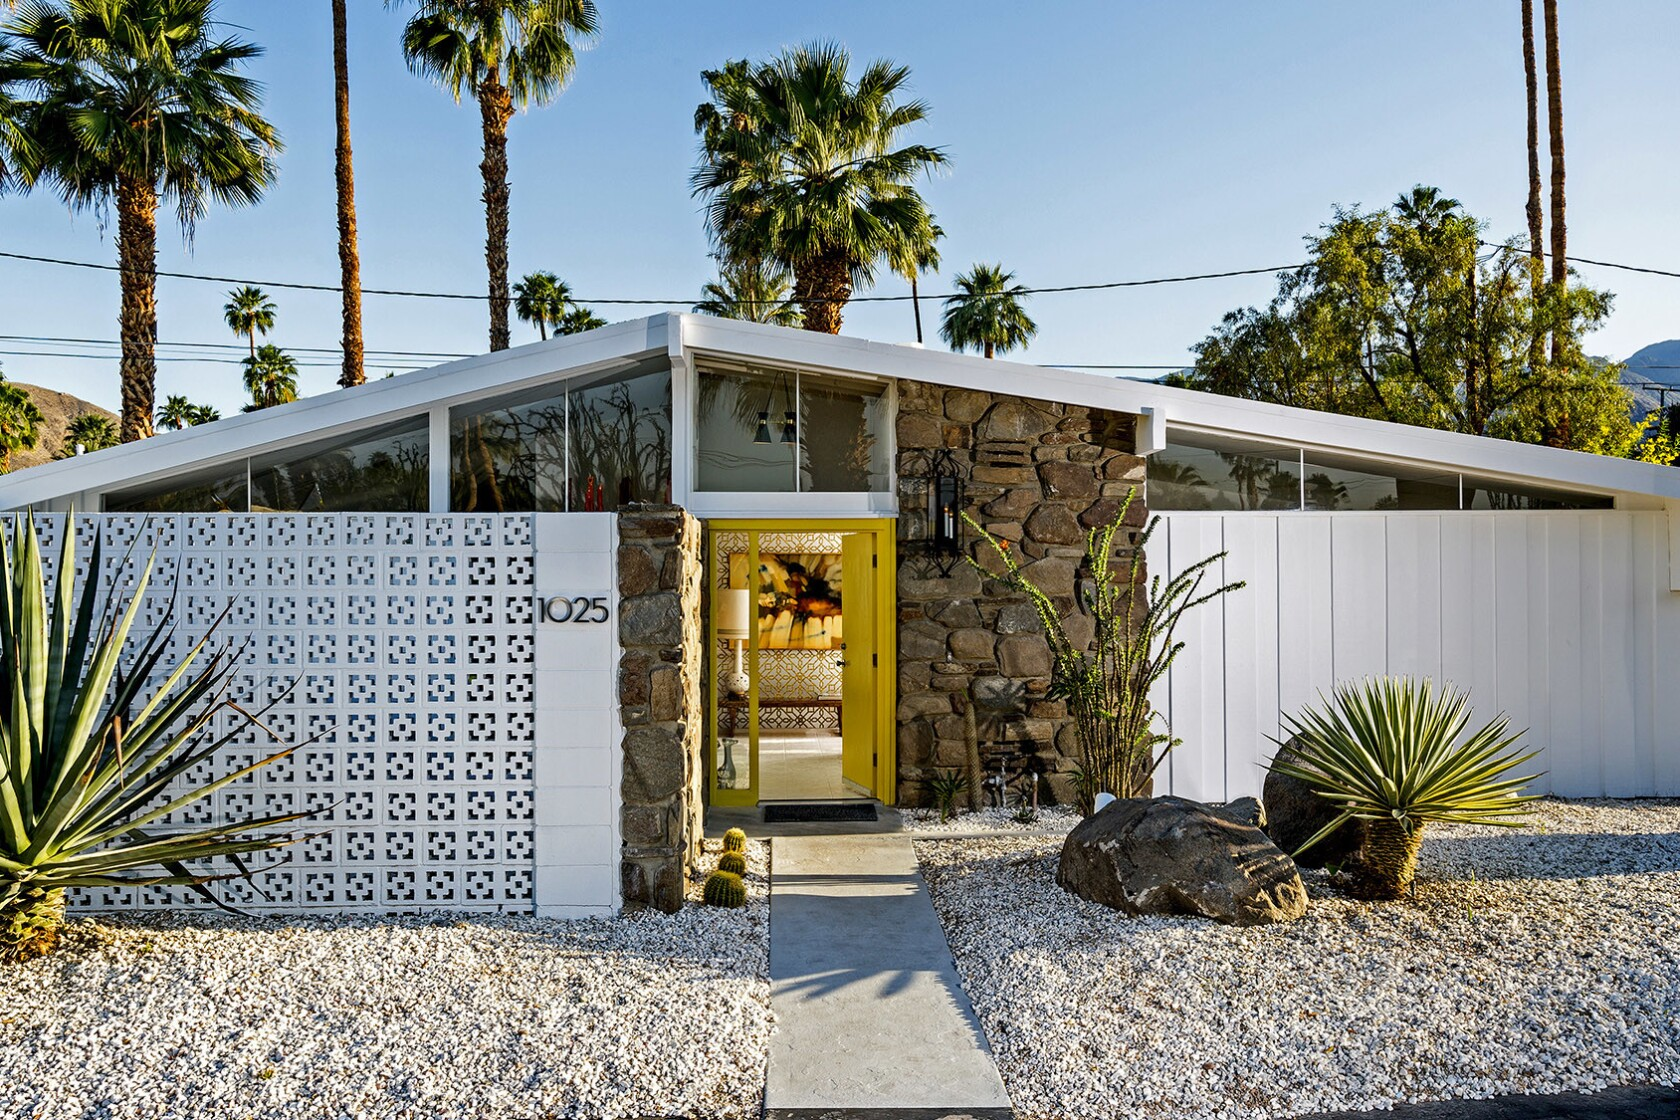 Midcentury Modern S Appeal Is Simple It Fits The Socal Lifestyle